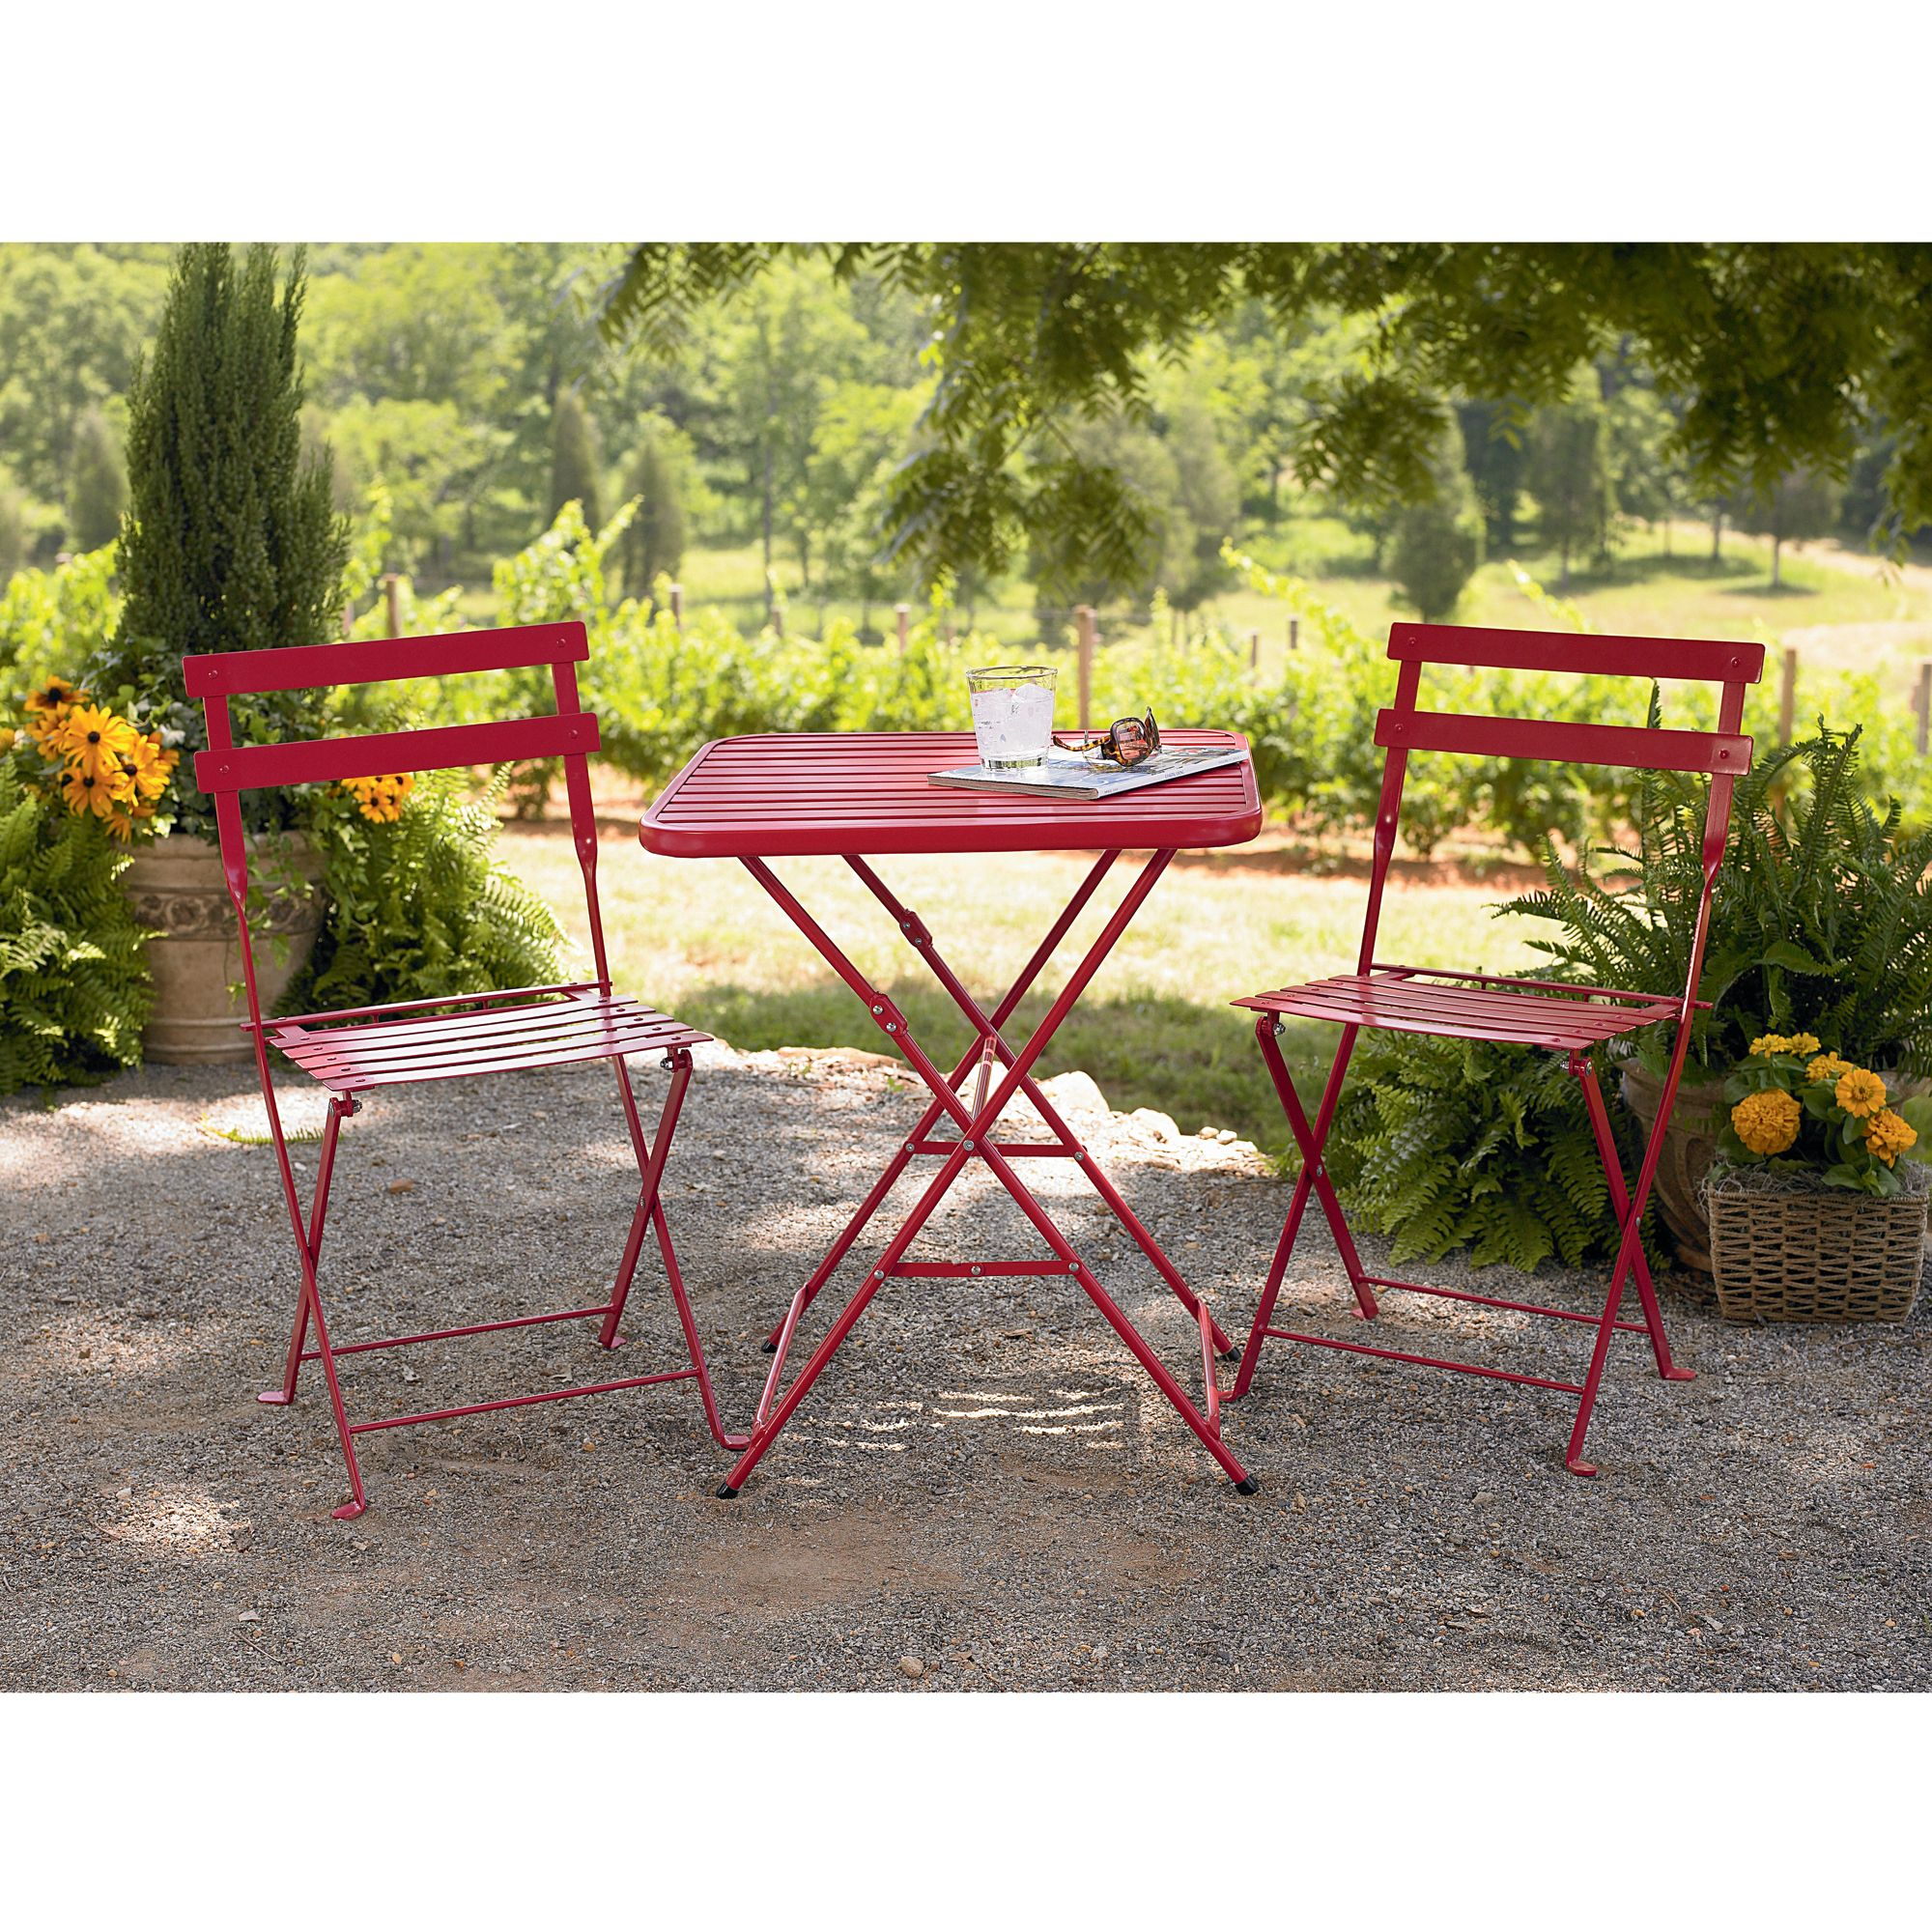 bistro table and chairs kmart wooden rifton chair garden oasis french steel red